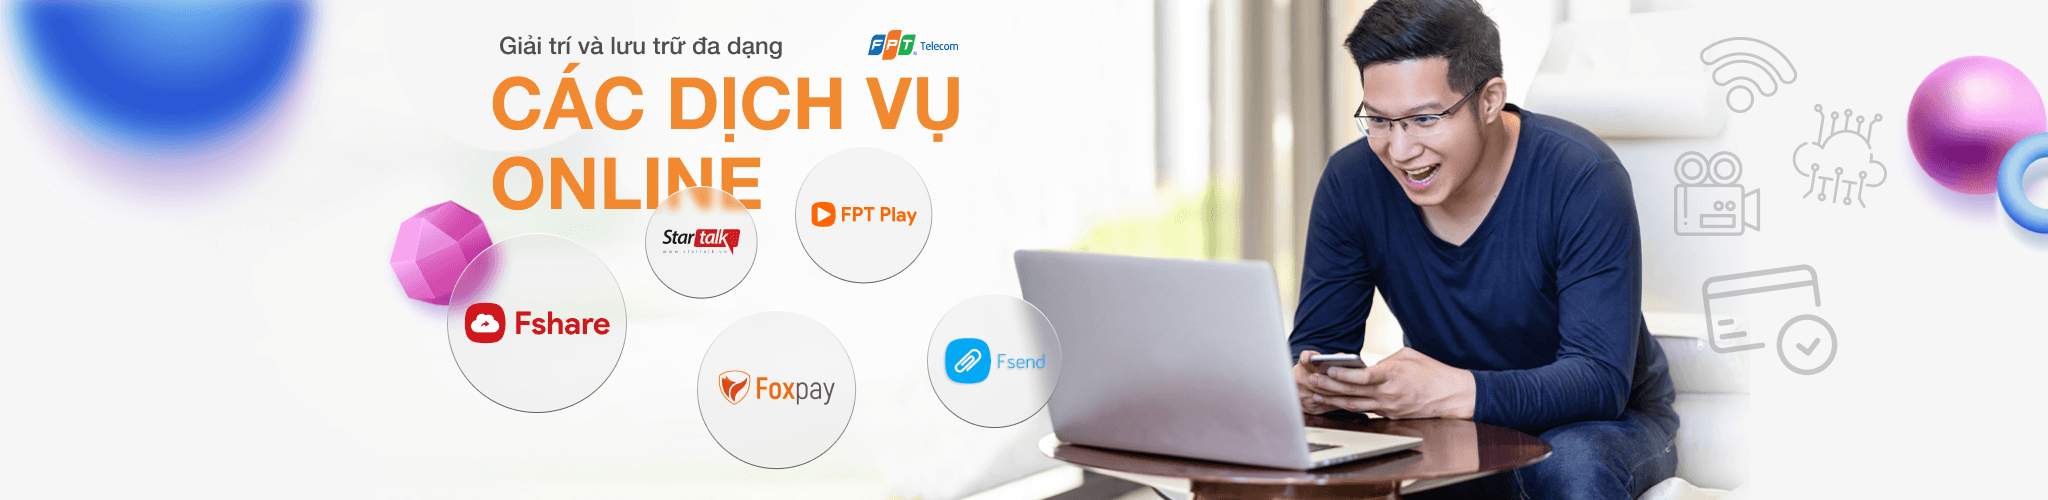 banner dịch vụ fpt online